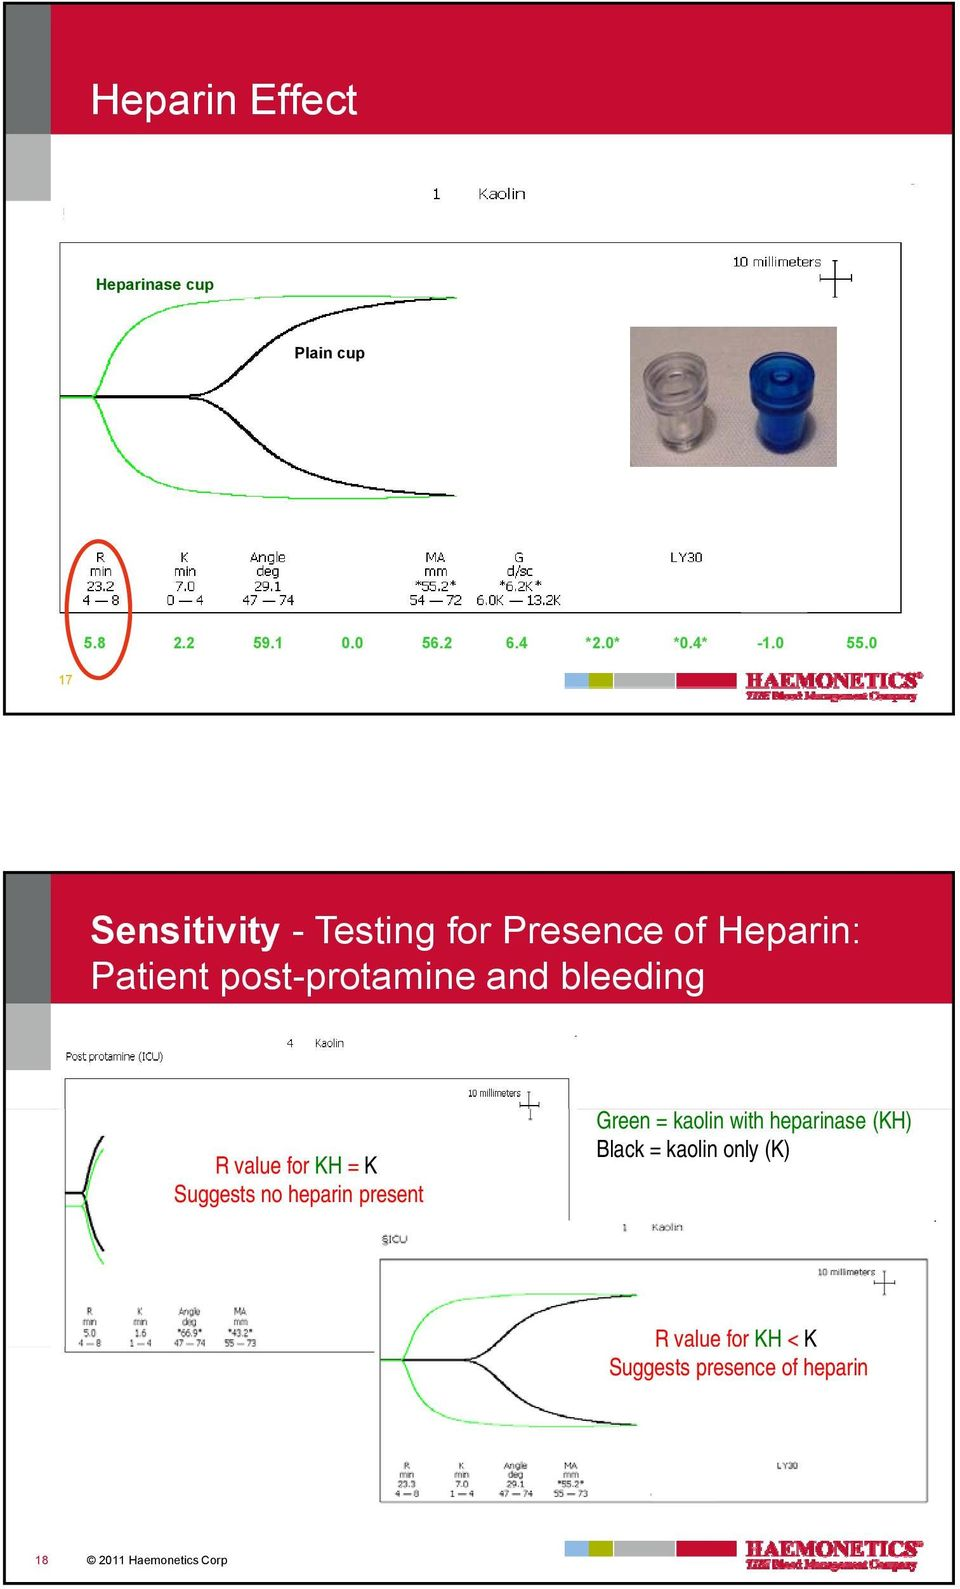 R value for KH = K Suggests no heparin present Green = kaolin with heparinase (KH) Black